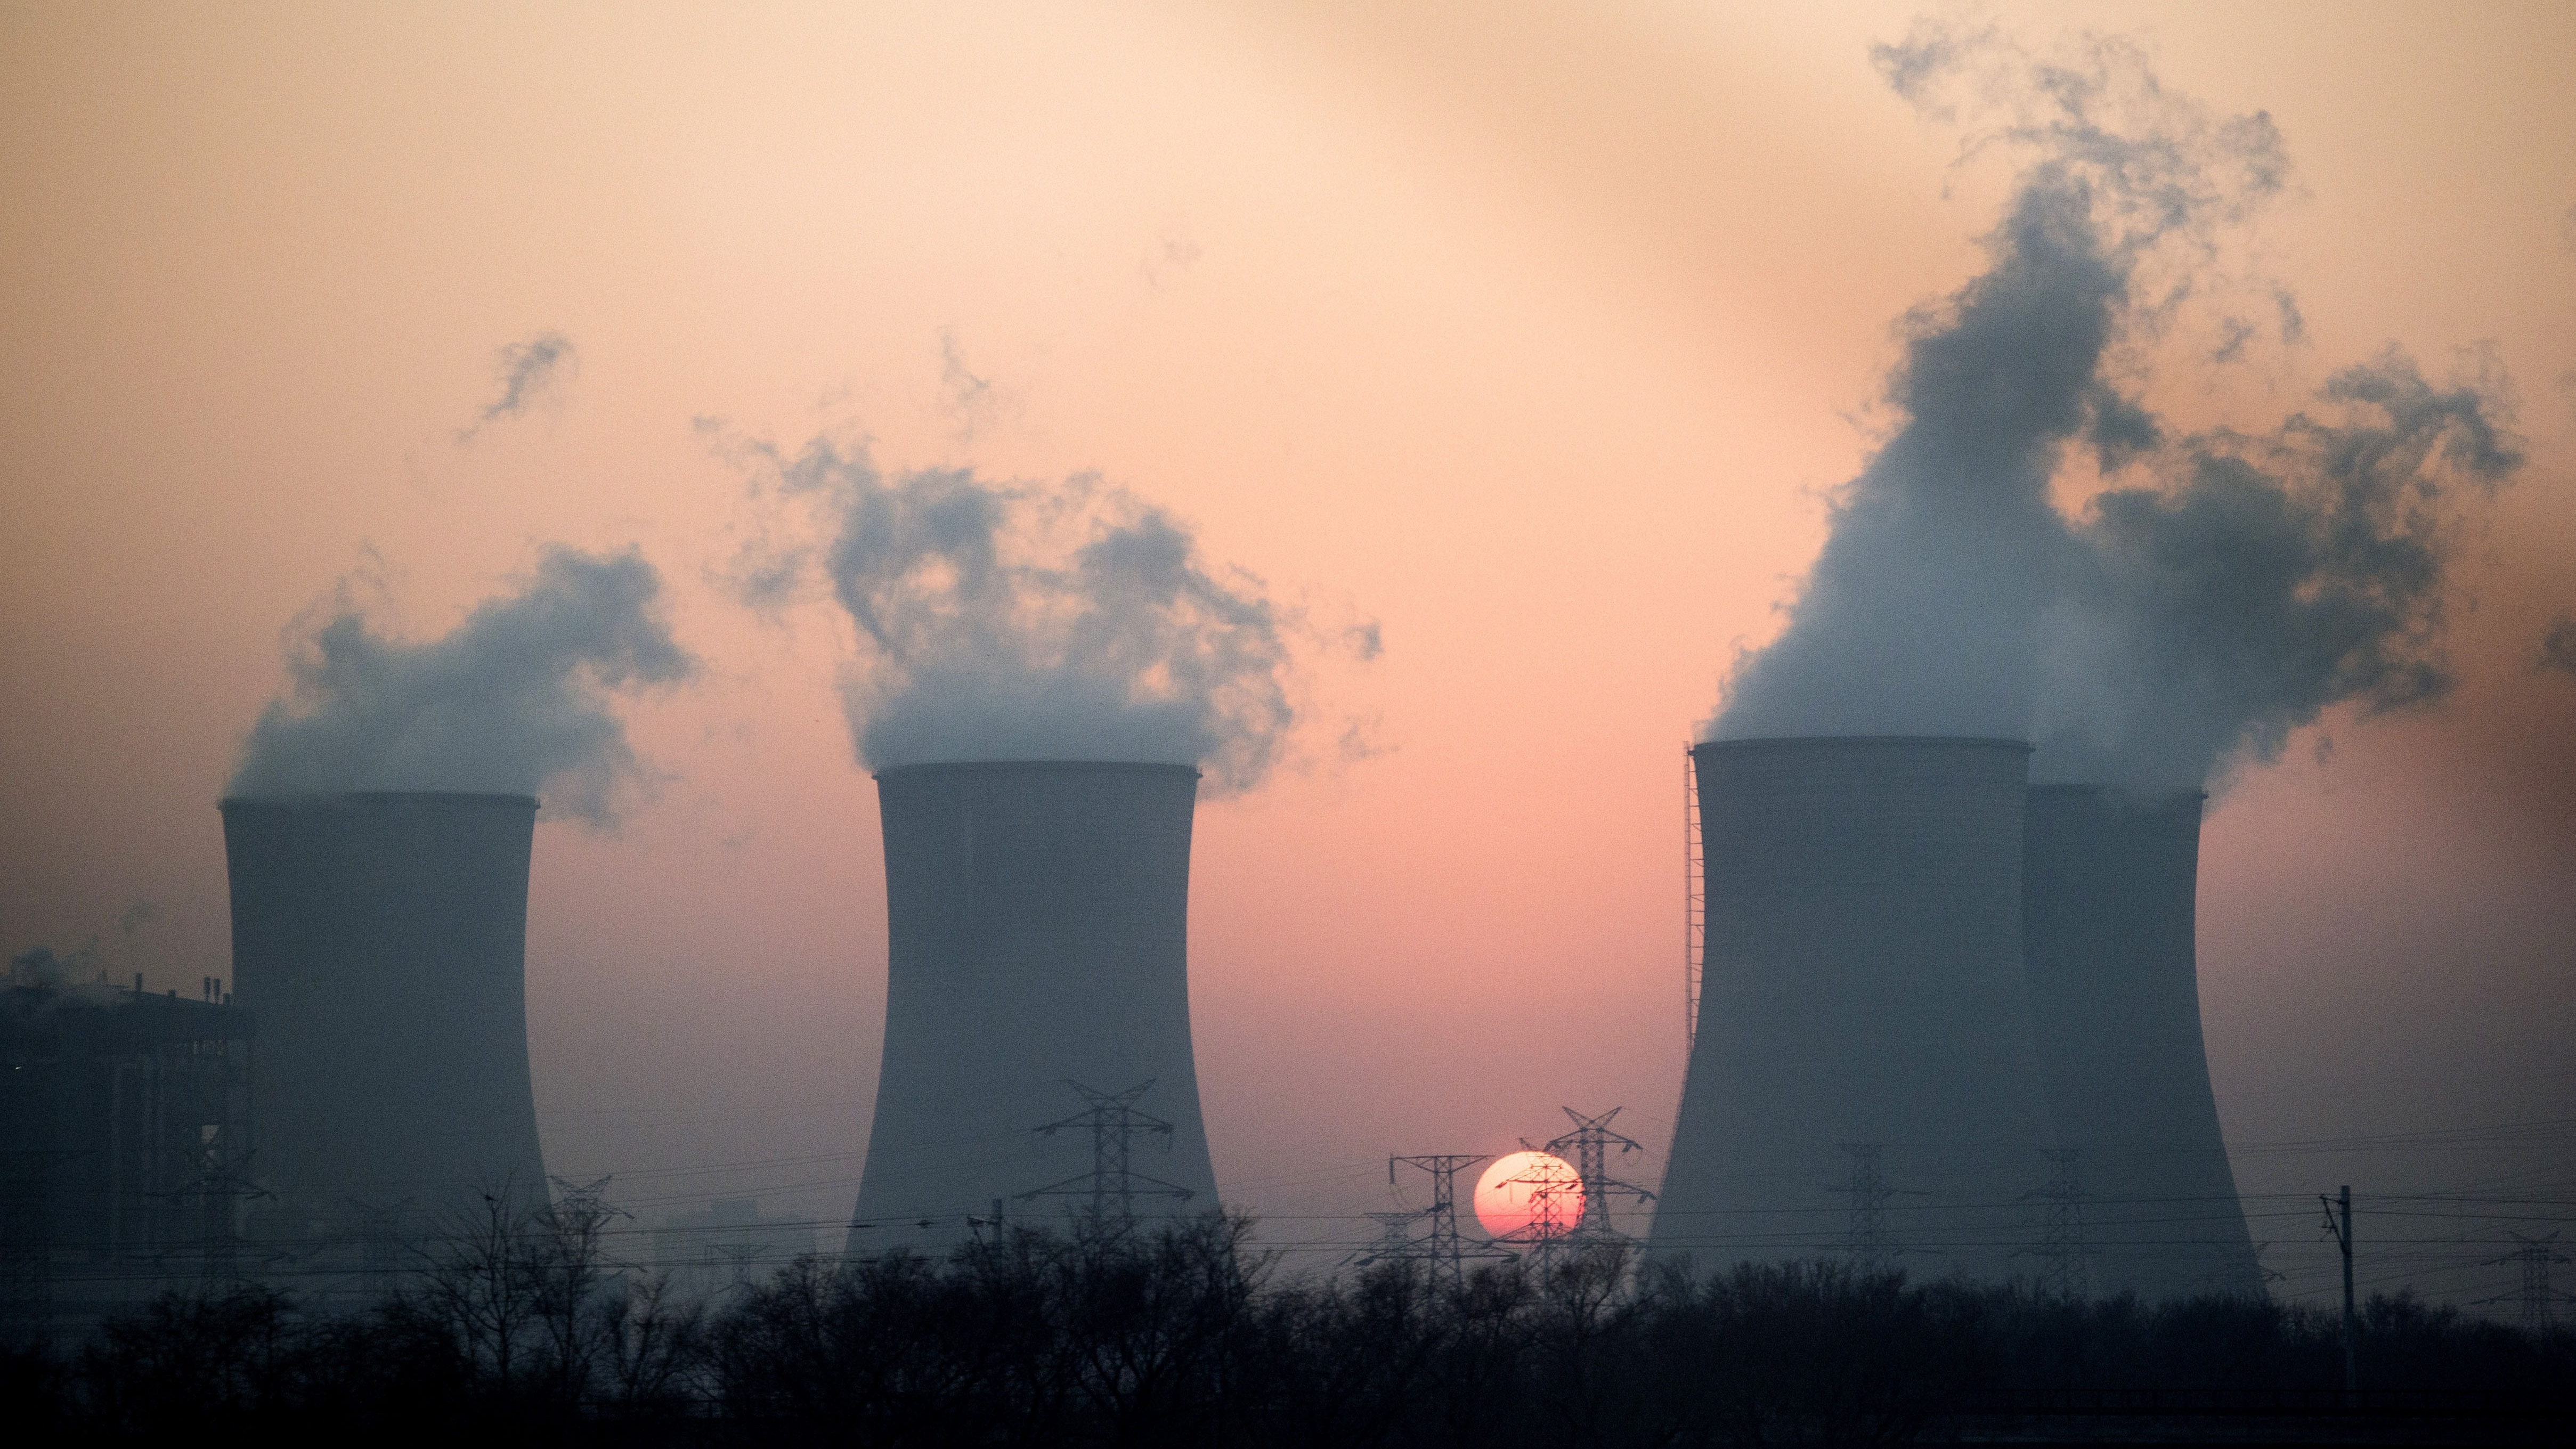 2014 Brought Lasting Action On Climate Change Policy